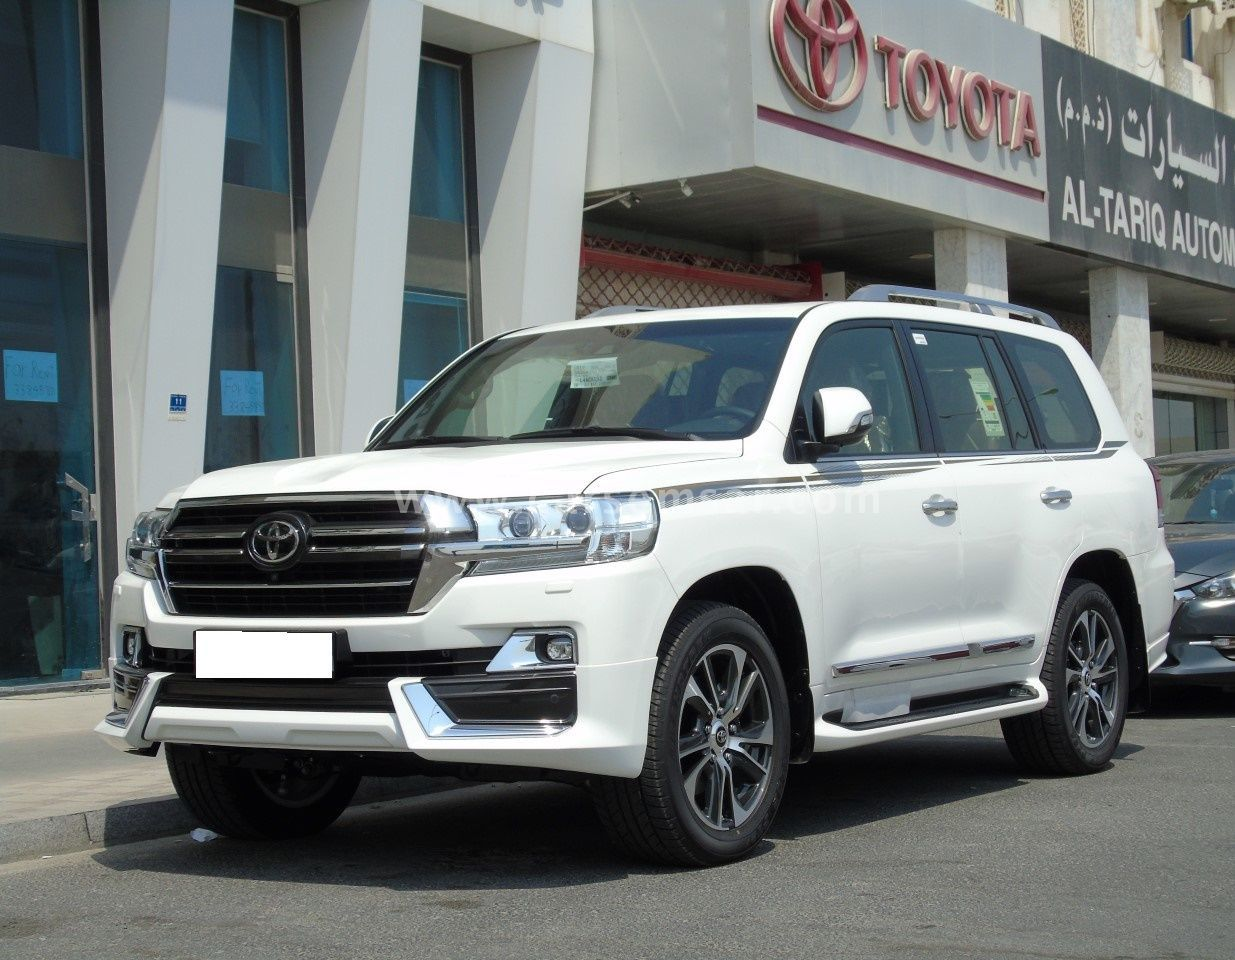 2020 Toyota Land Cruiser Vxs Grand Touring S For Sale In Qatar New And Used Cars For Sale In Qatar